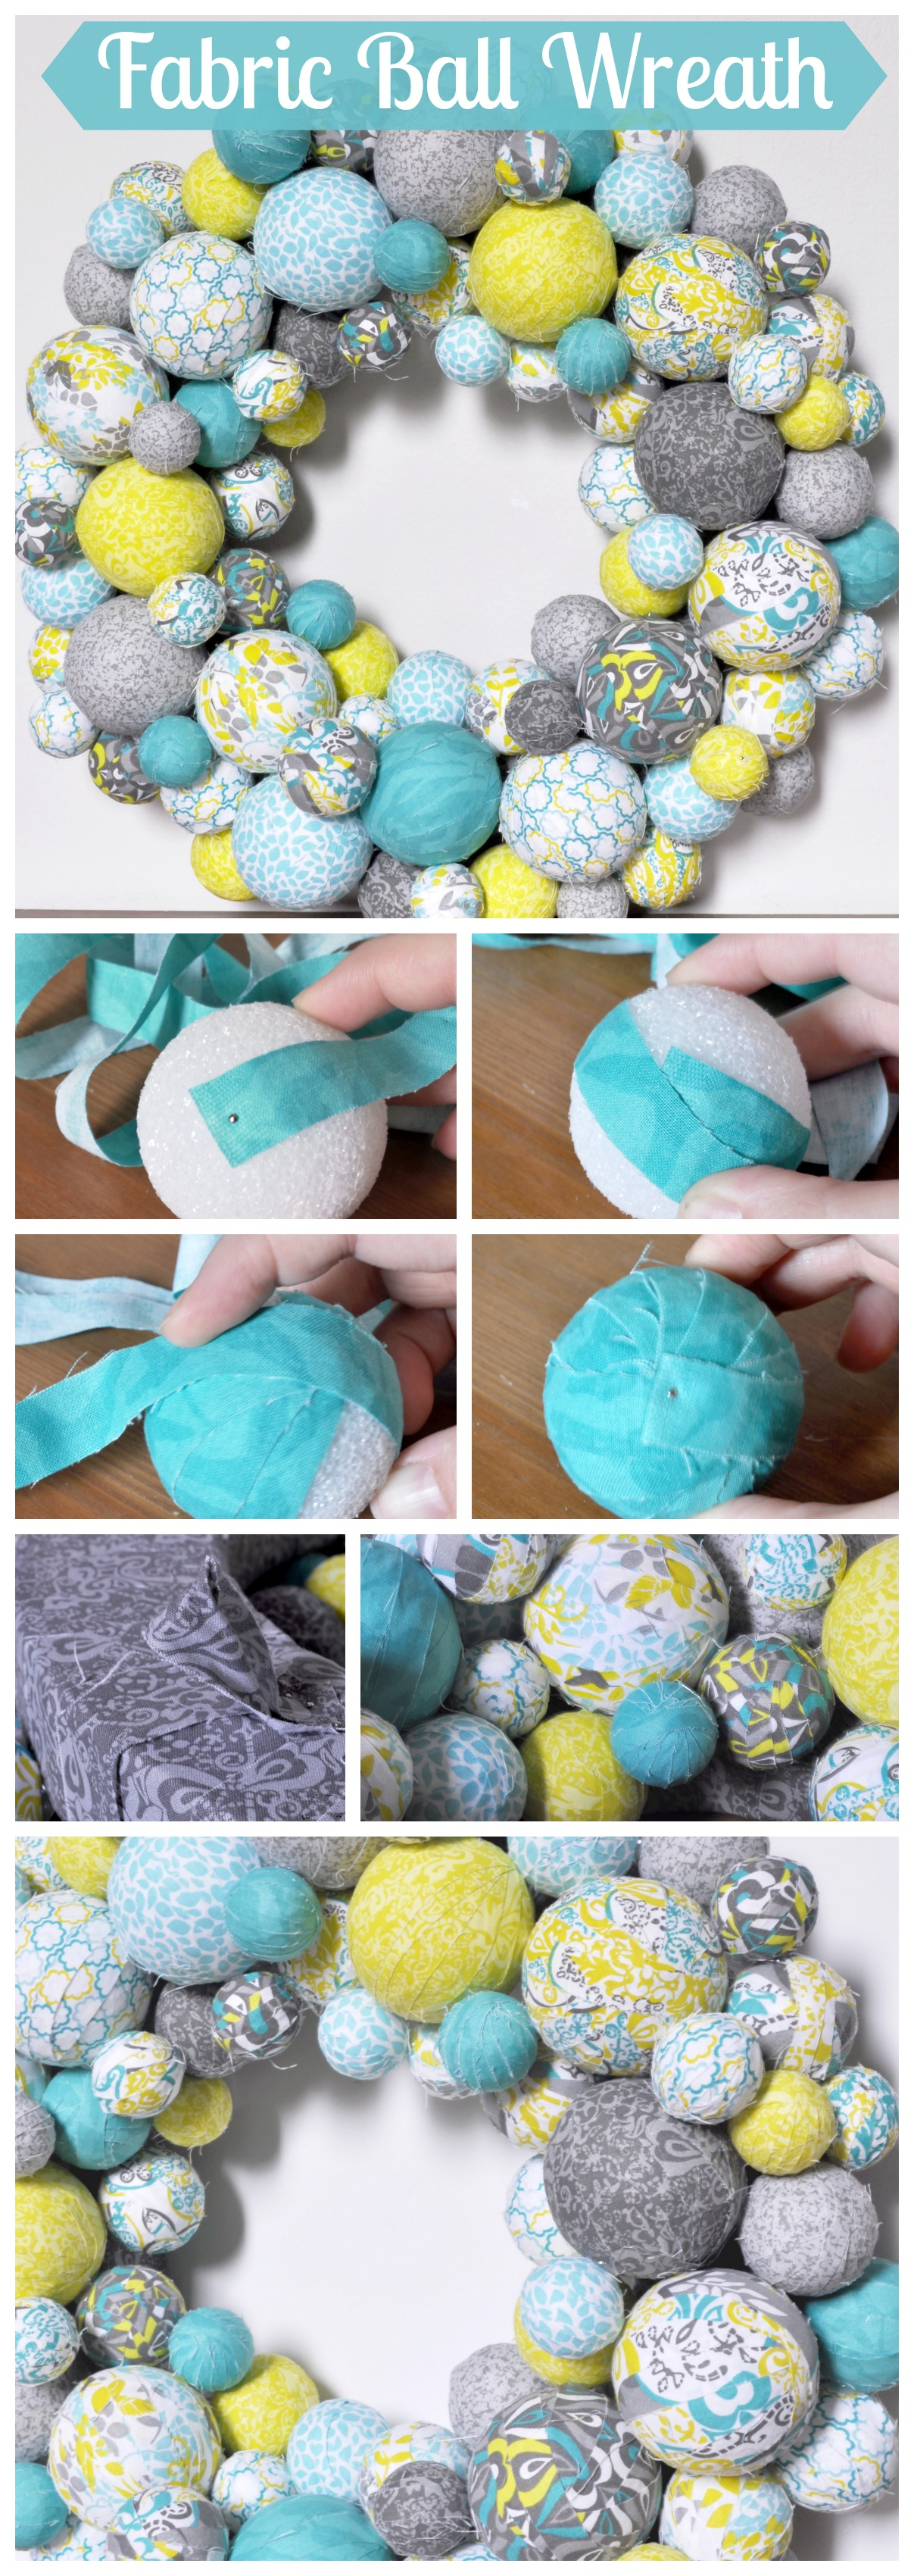 Fabric Ball Wreath - I am so excited about my spring wreath in aqua, lemongrass green, and gray patterns! It looks fabulous in our house and would look super cute in a nursery! {The Love Nerds} #crafts #springwreath